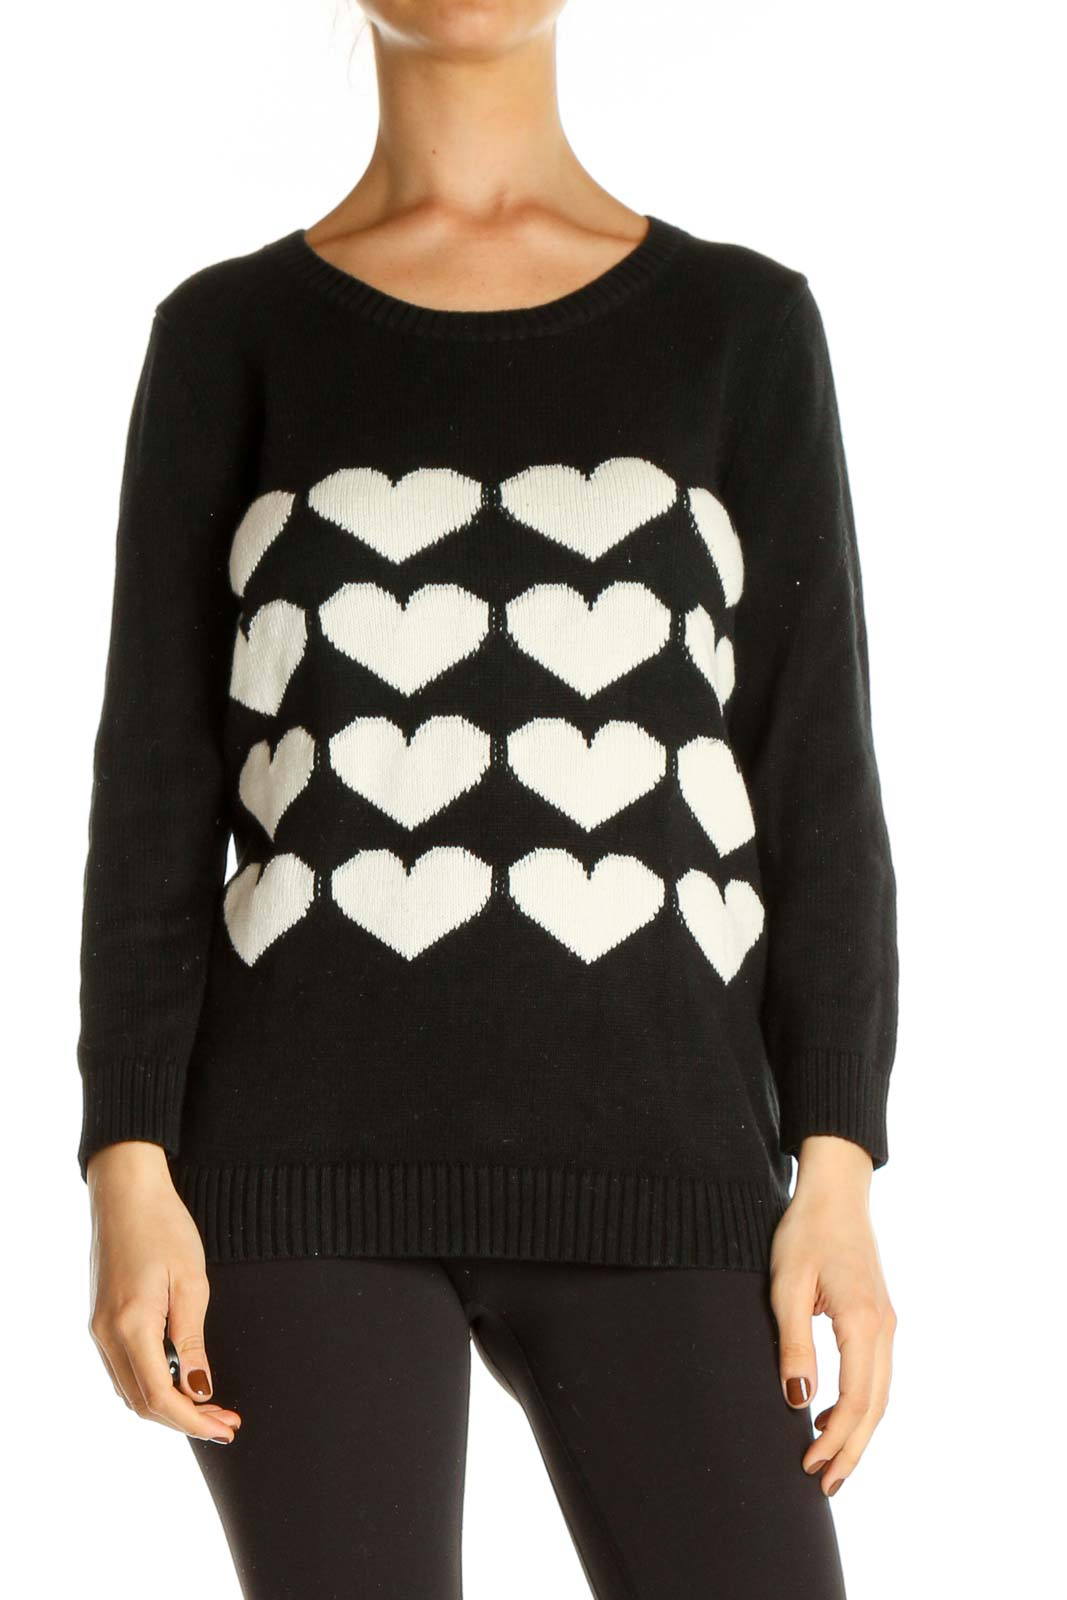 White Geometric Print All Day Wear Sweater Front